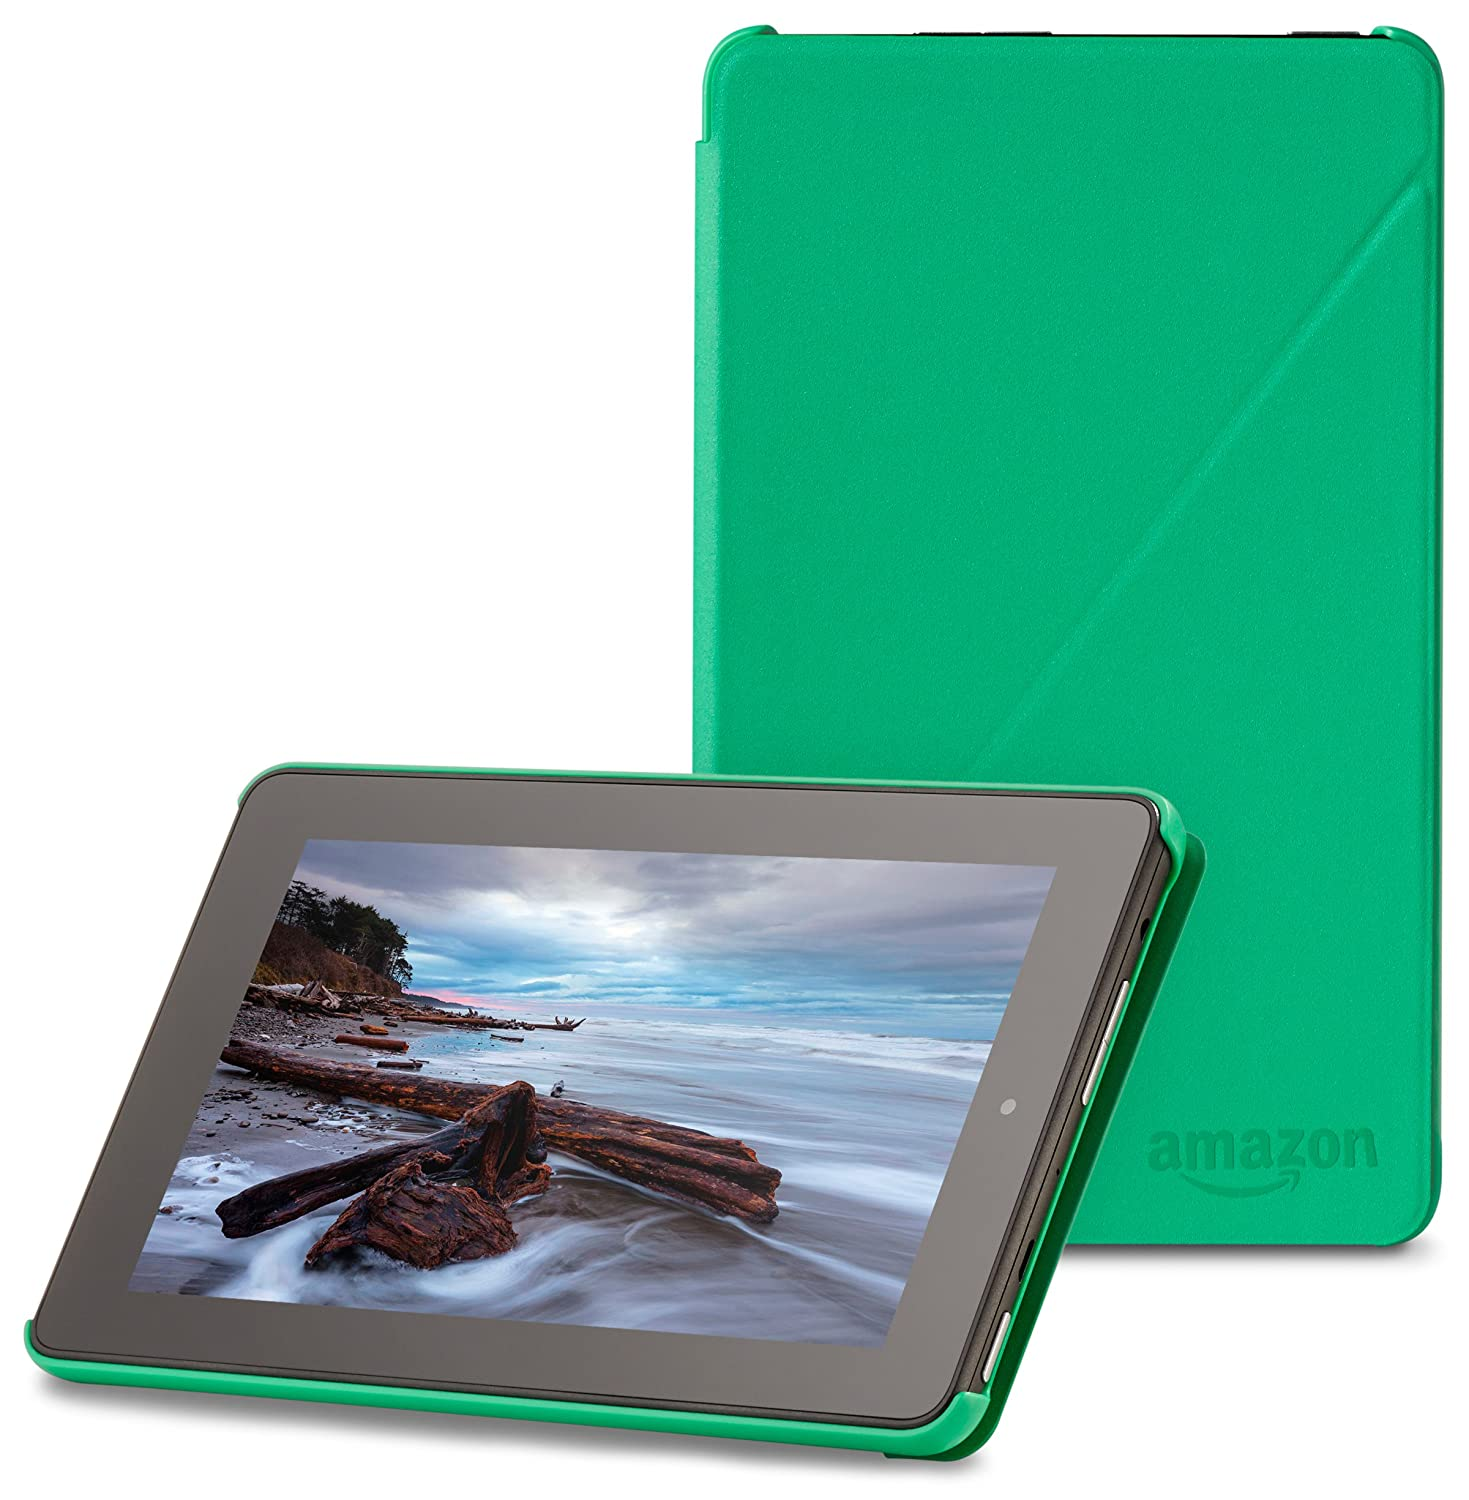 "Amazon Fire 7"" (2015 release) Case - Slim Lightweight Standing Custom Fit Cover for Amazon Fire 7 Inch Tablet, Green"